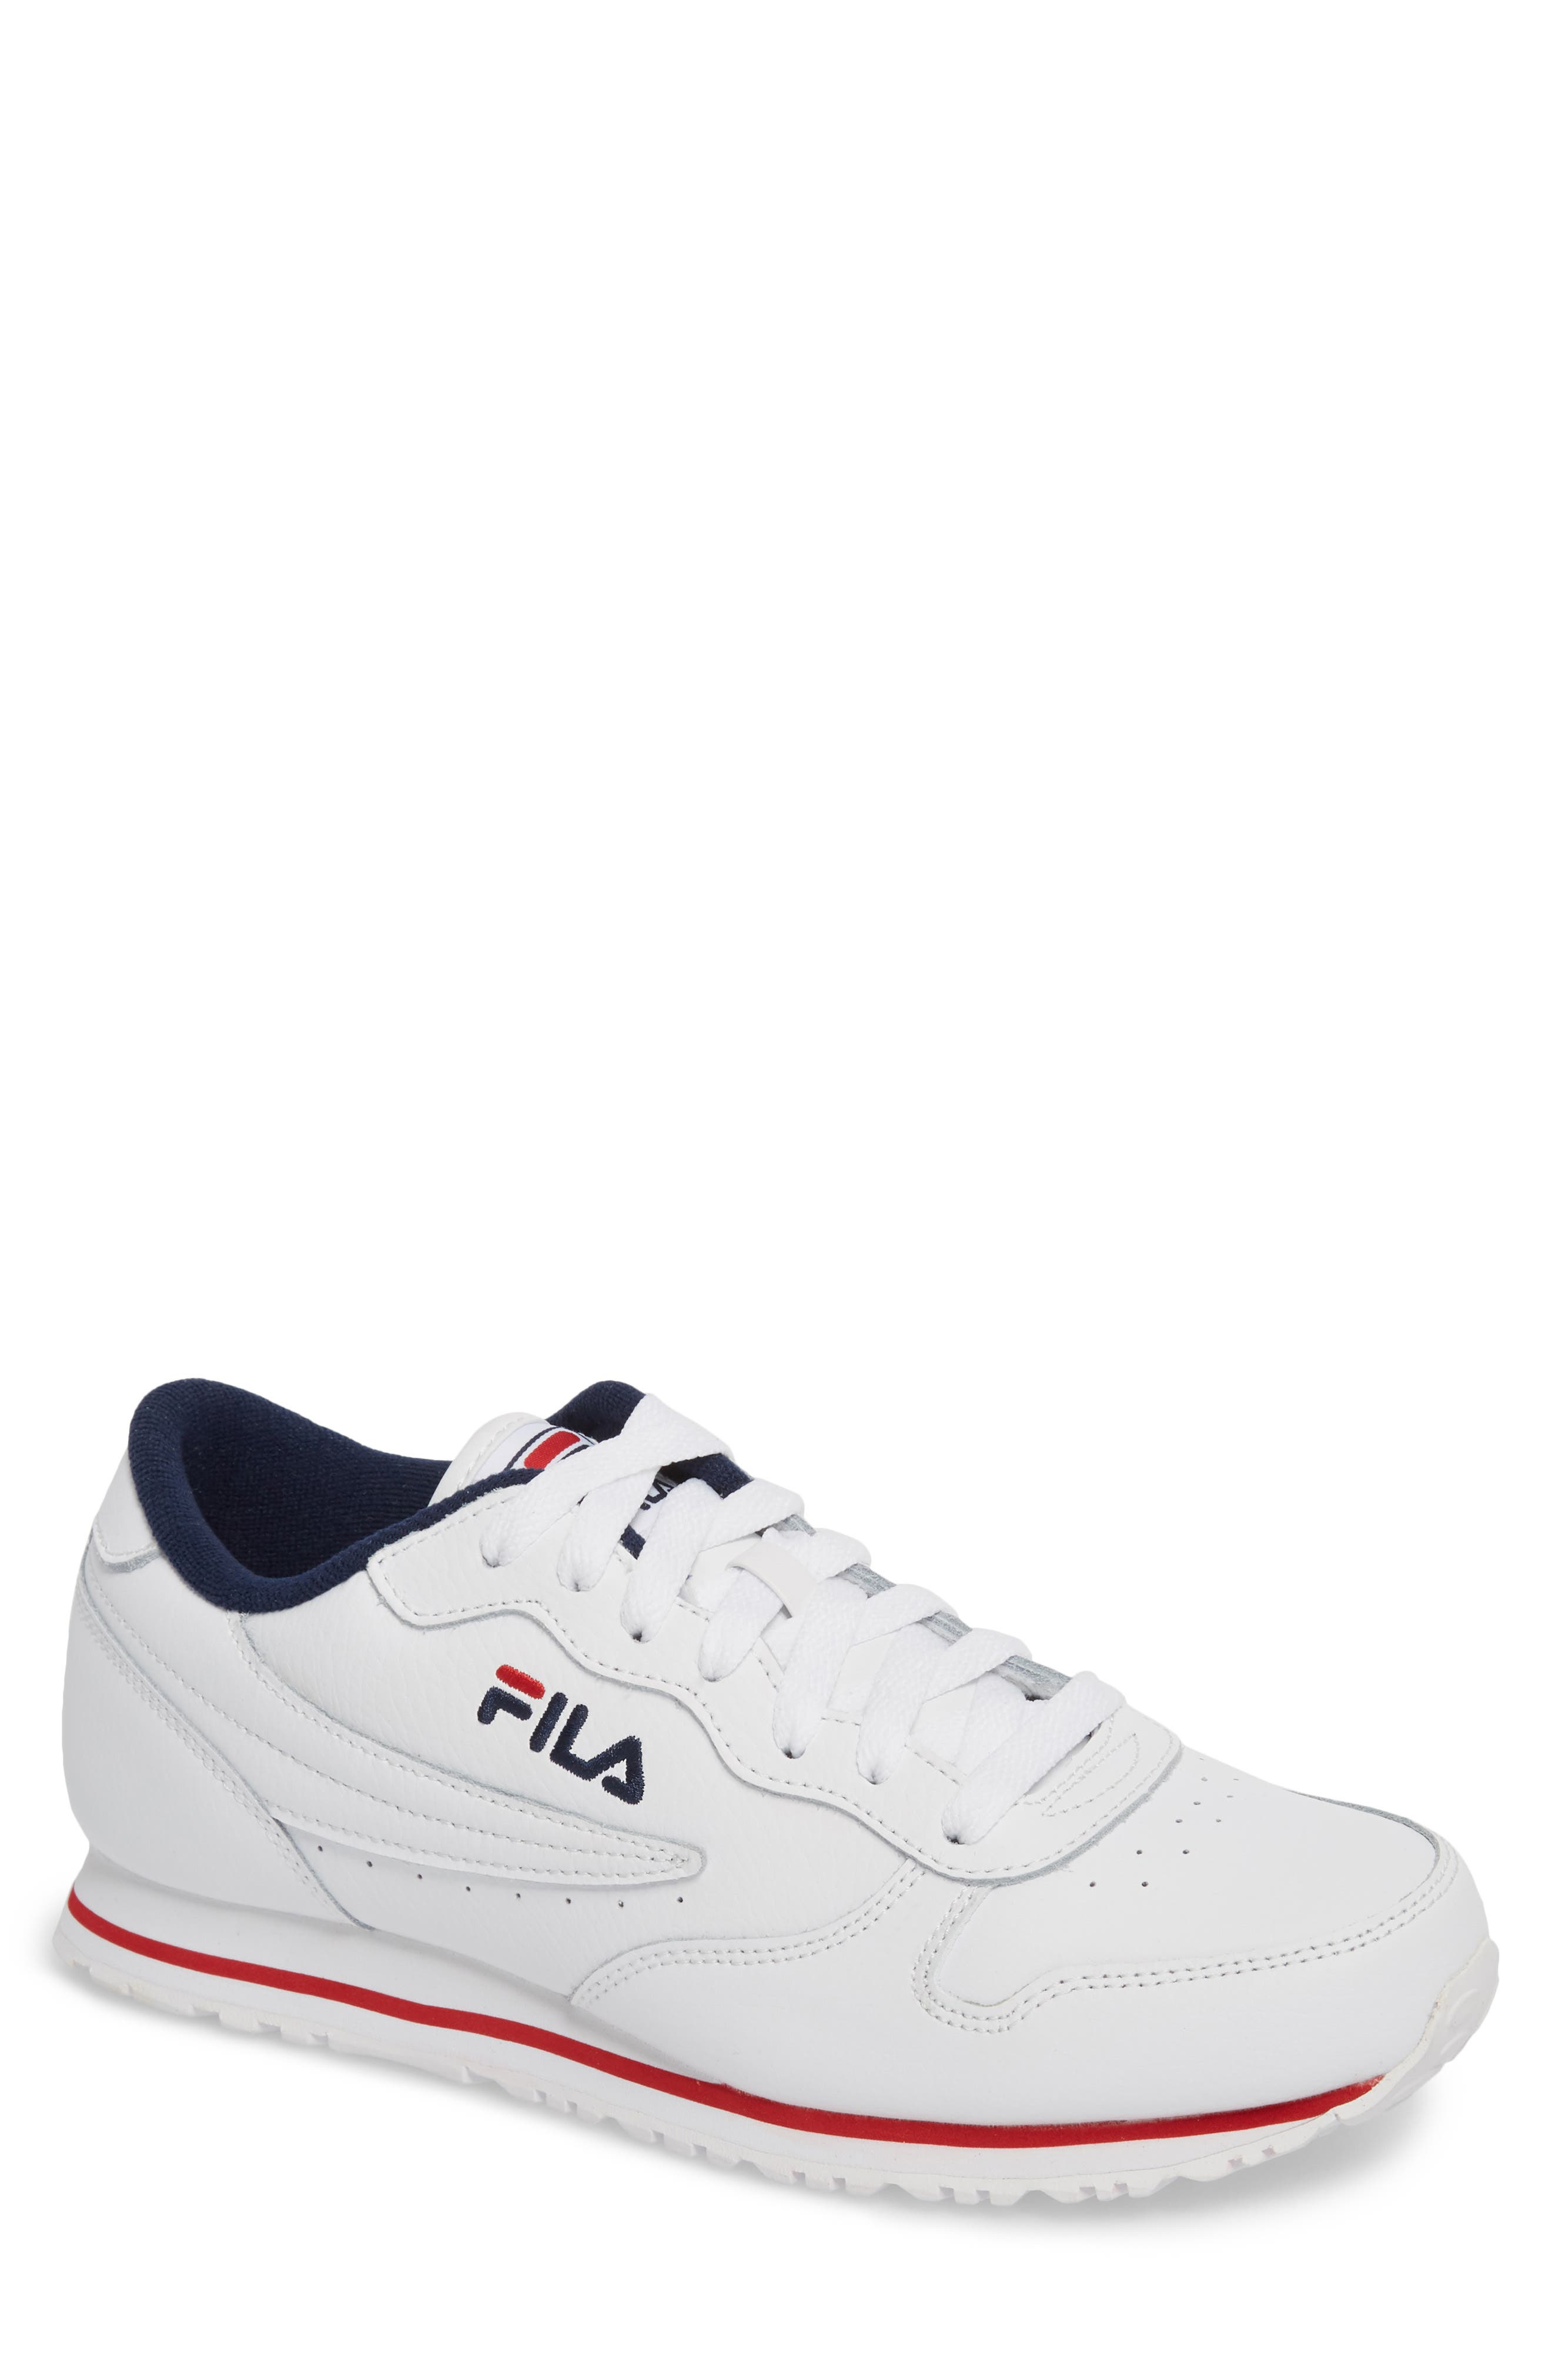 Euro Jogger Sneaker,                         Main,                         color, WHITE/ NAVY/ RED